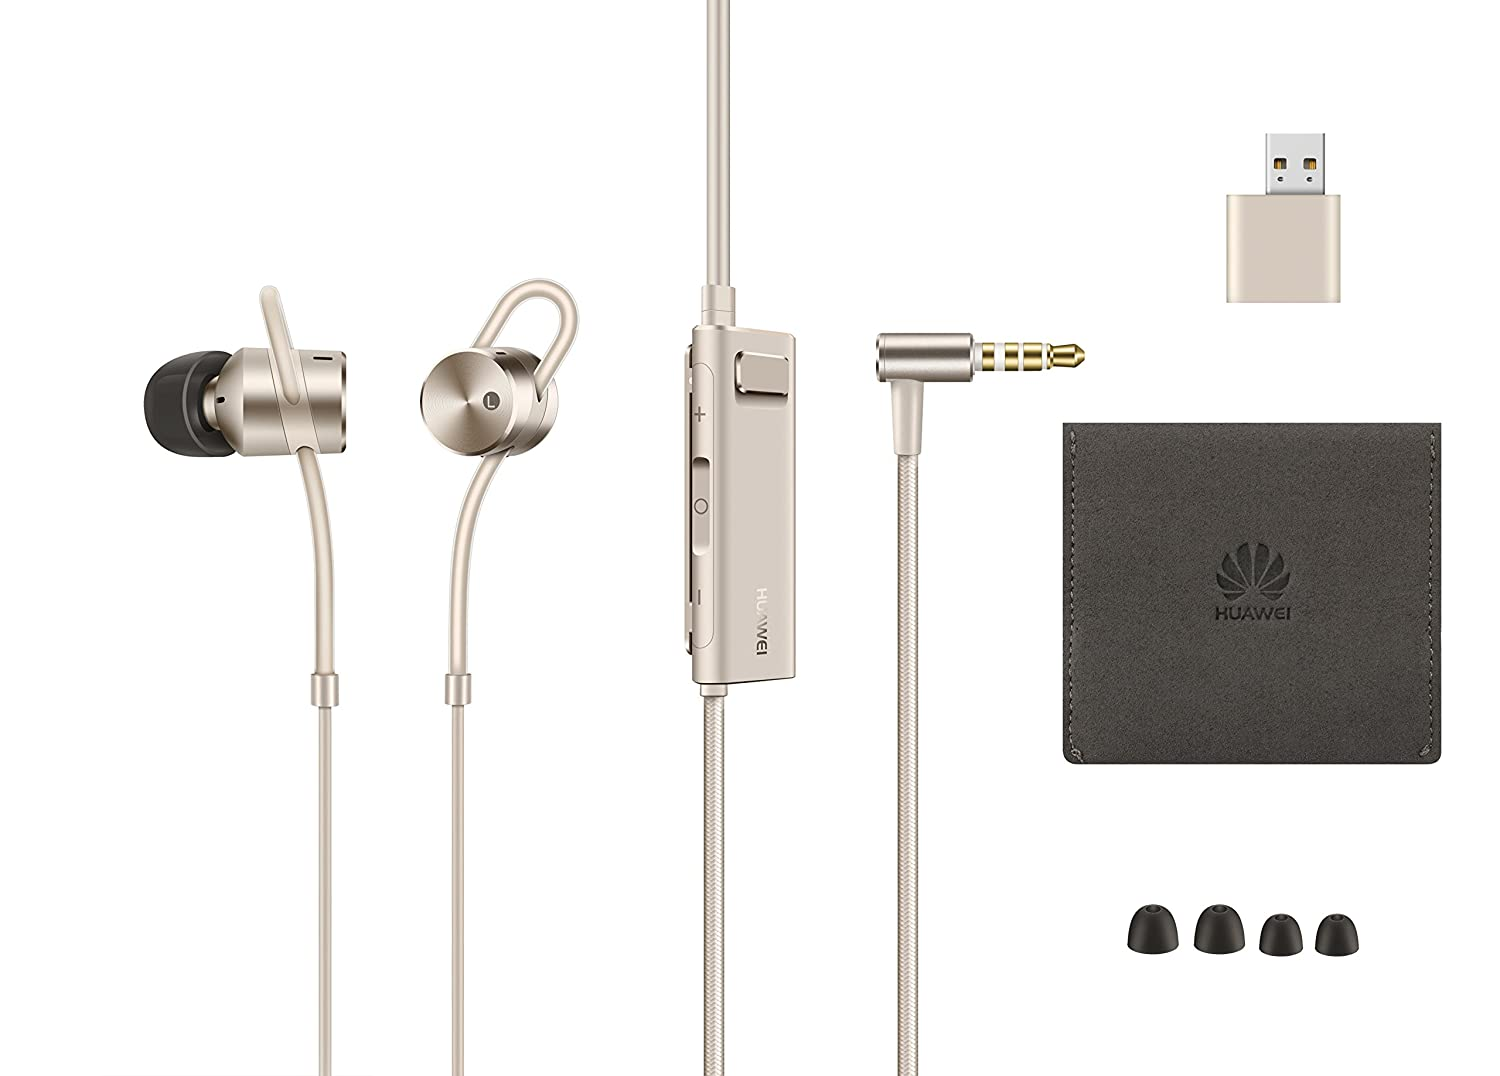 Huawei Active Noise Cancelling (ANC)